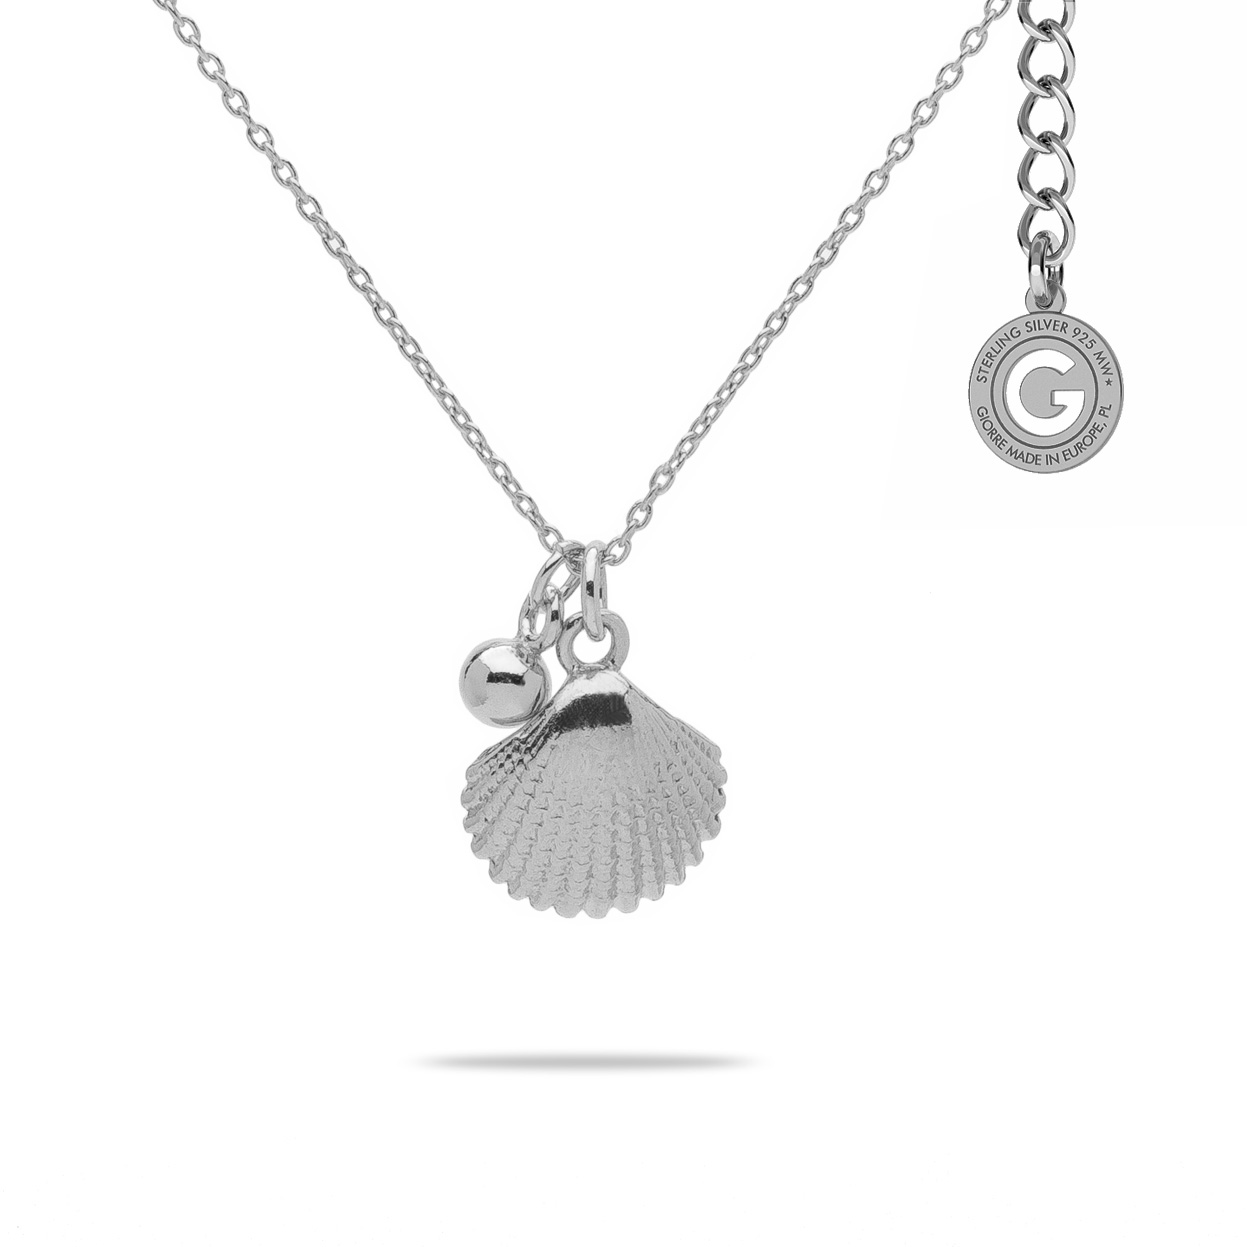 collier argent 925 sterling